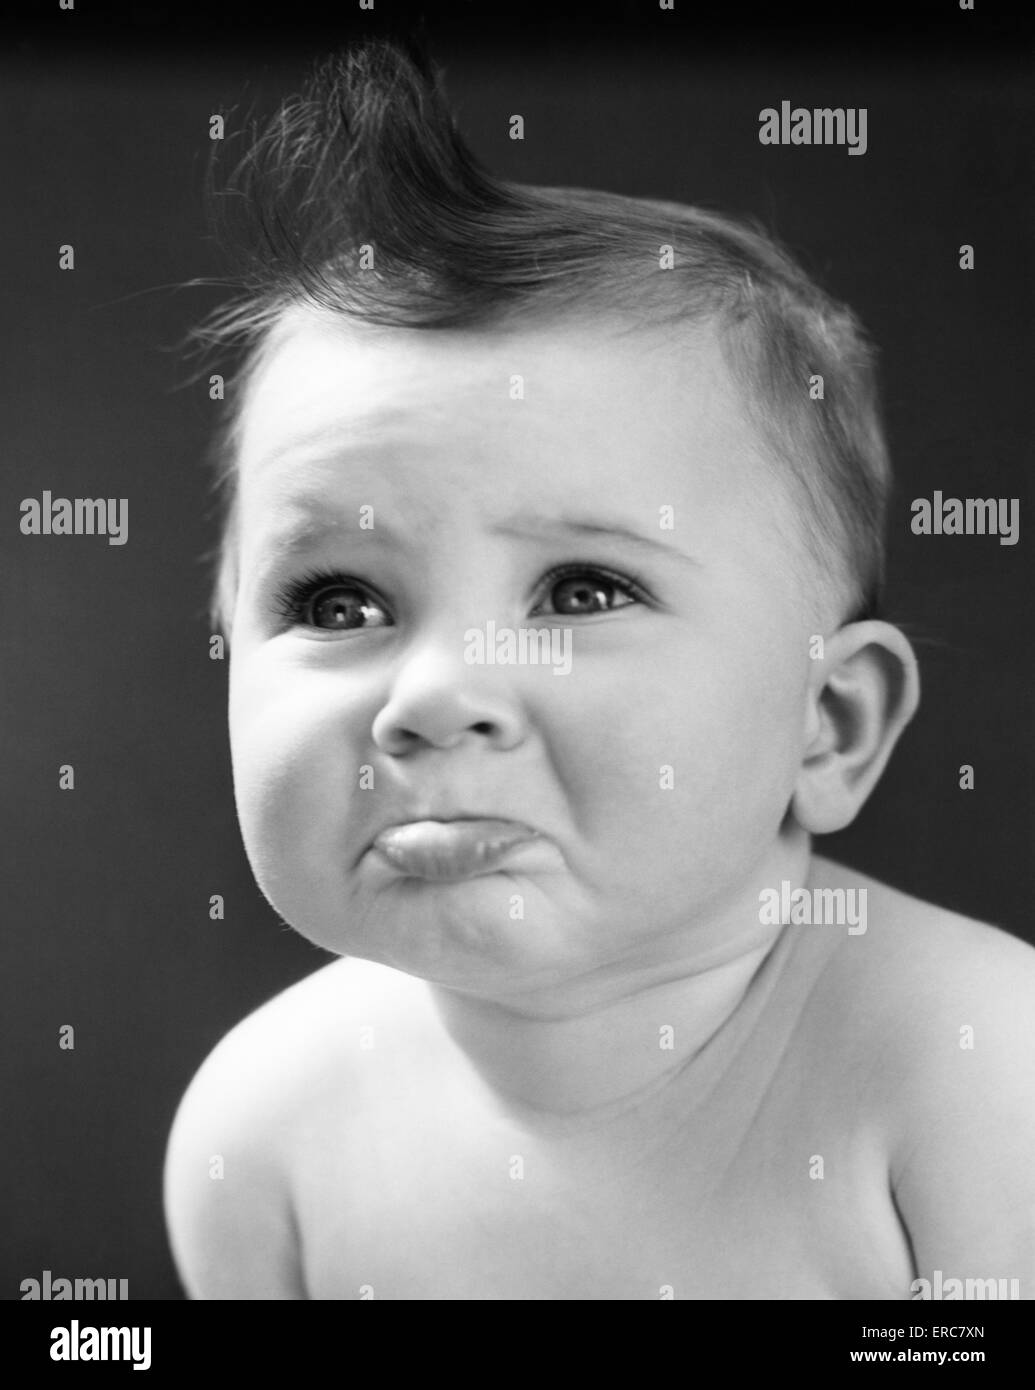 1940s 1950s sad baby with pouting lower lip extended about to cry